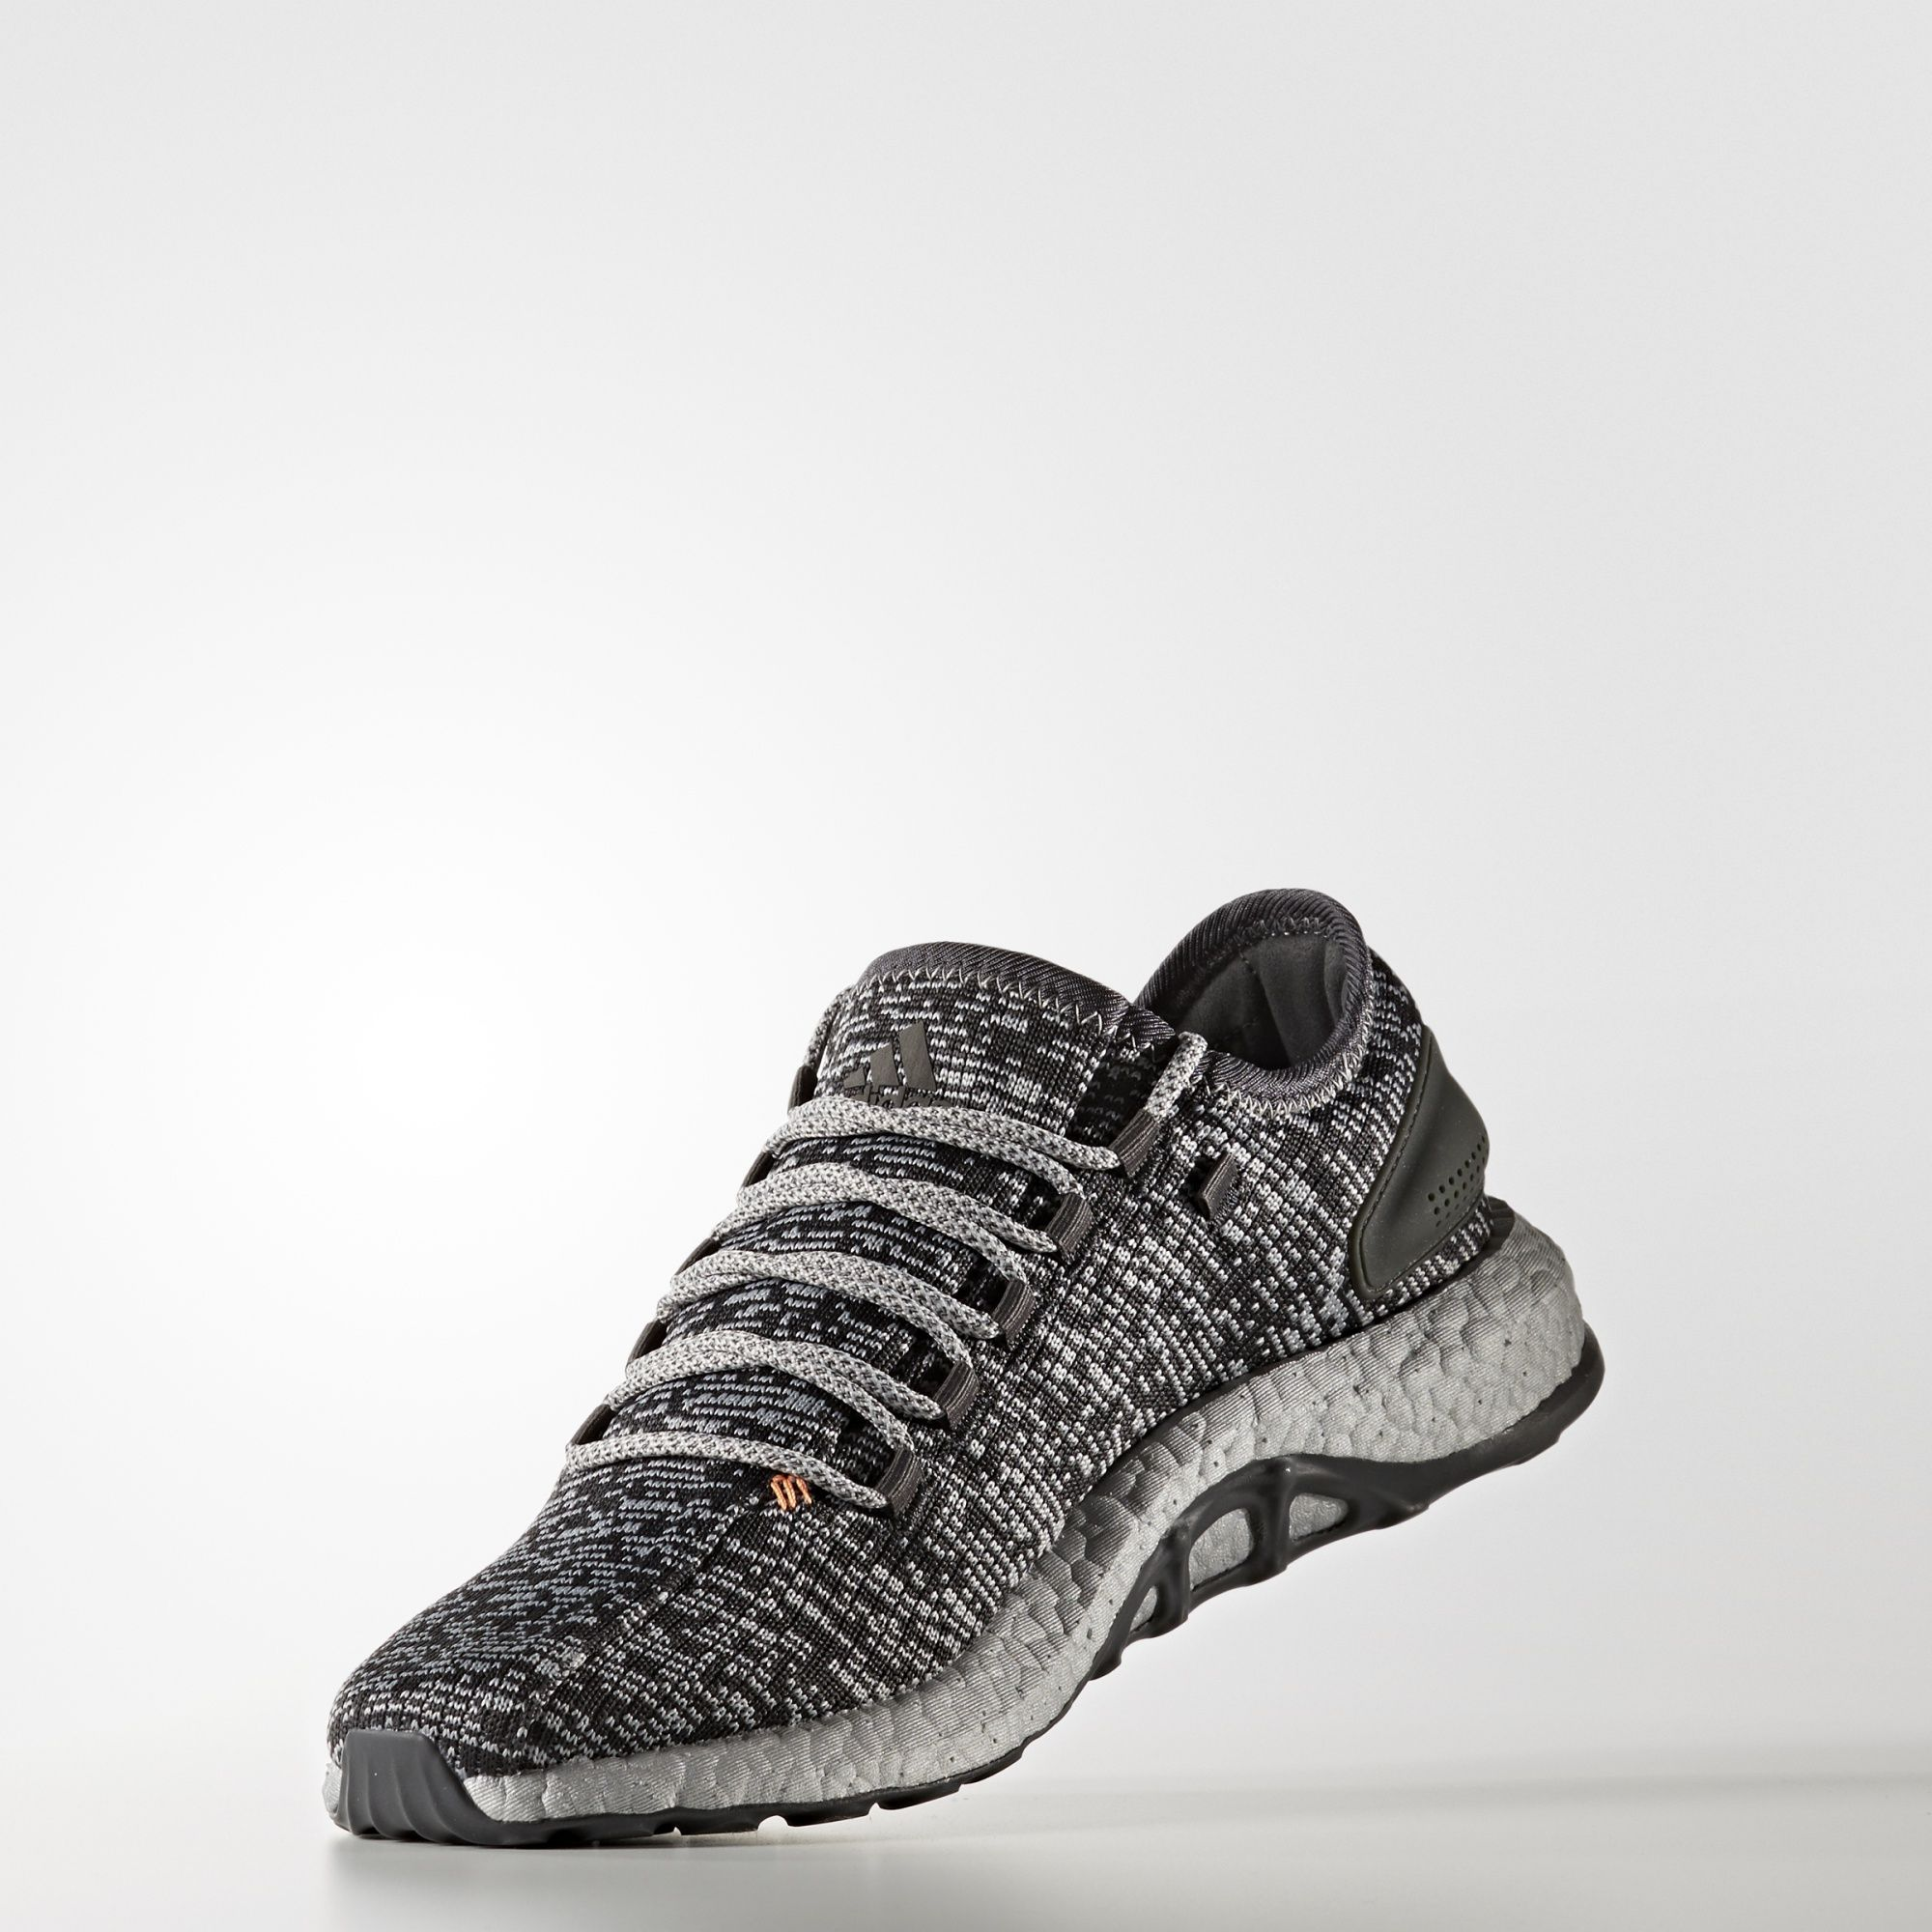 adidas Pure Boost LTD Silver S80701 2